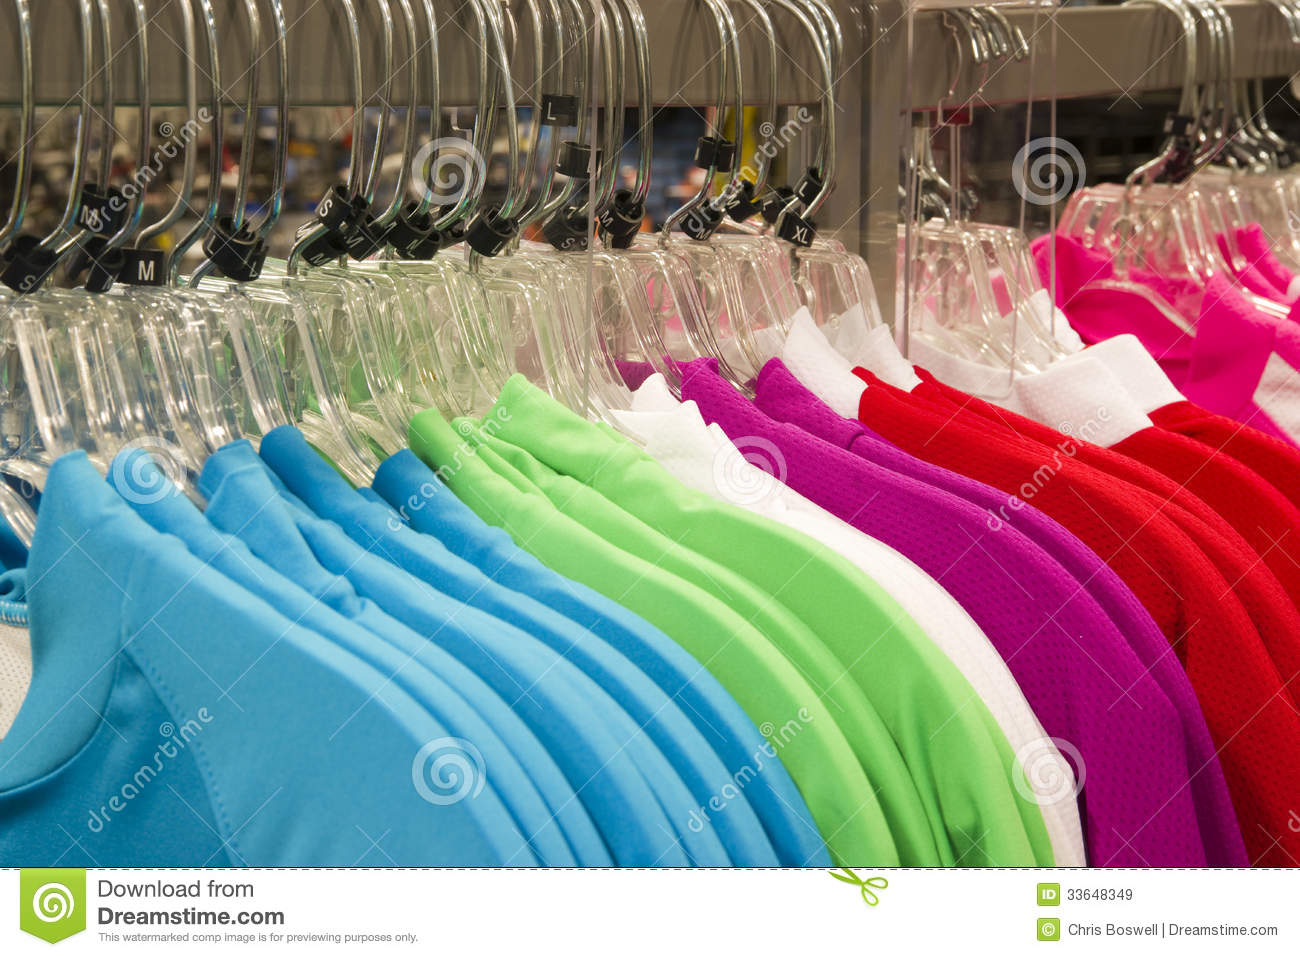 Clothes Hanging Images, Stock Pictures, Royalty Free Clothes